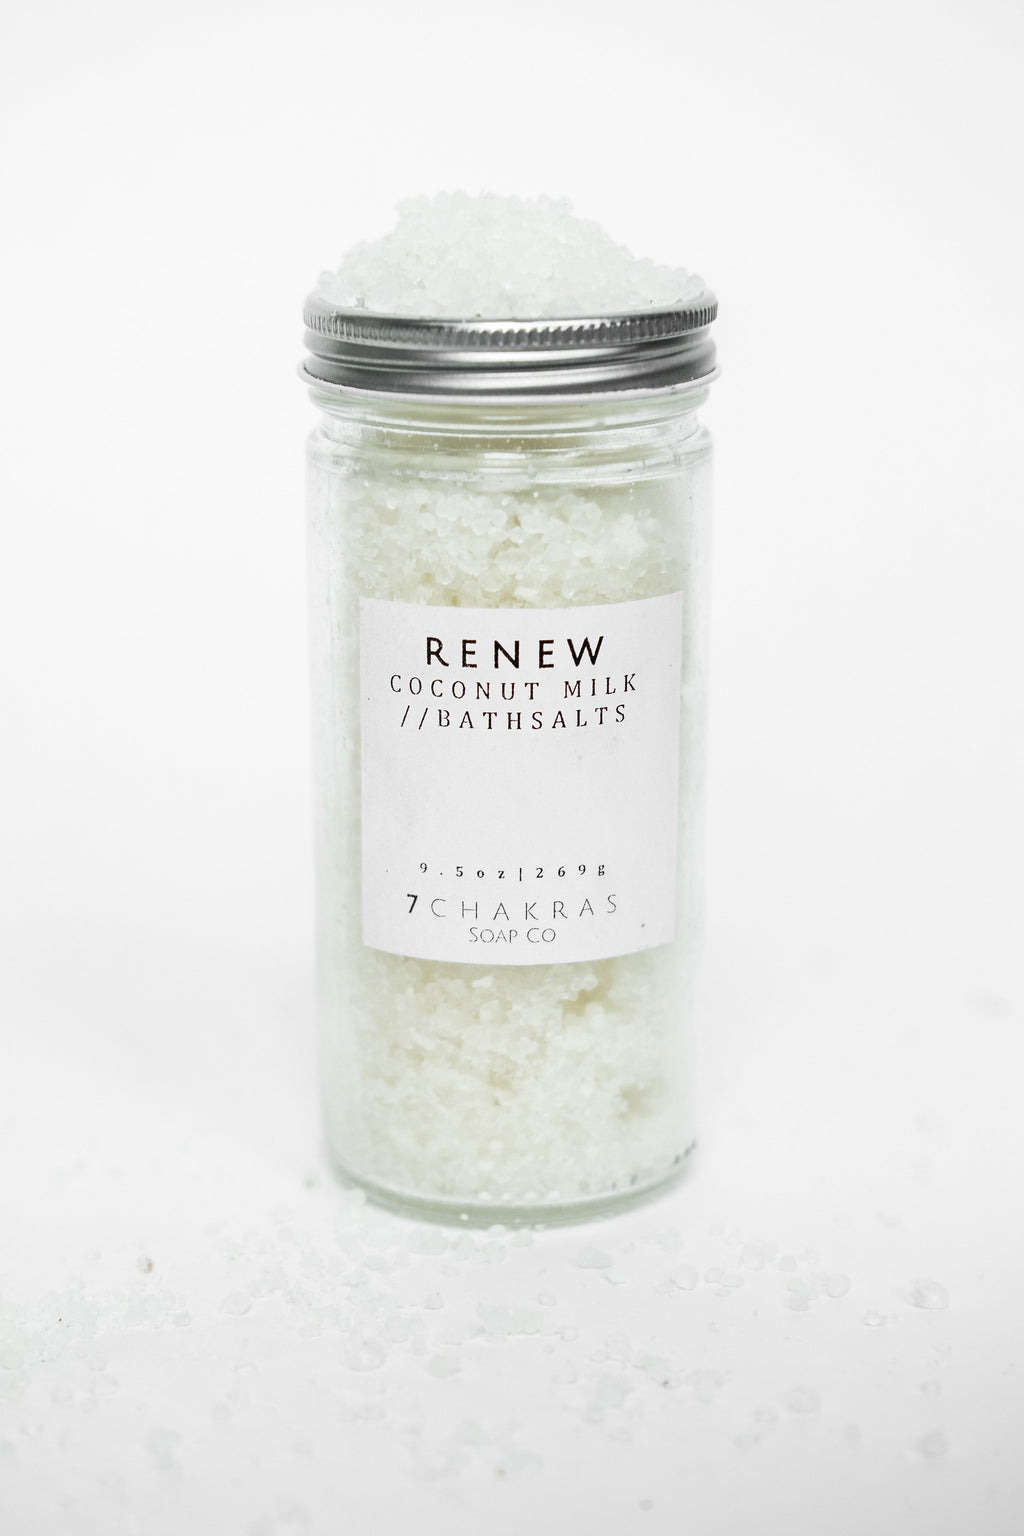 RENEW Coconut Milk Bath Salts